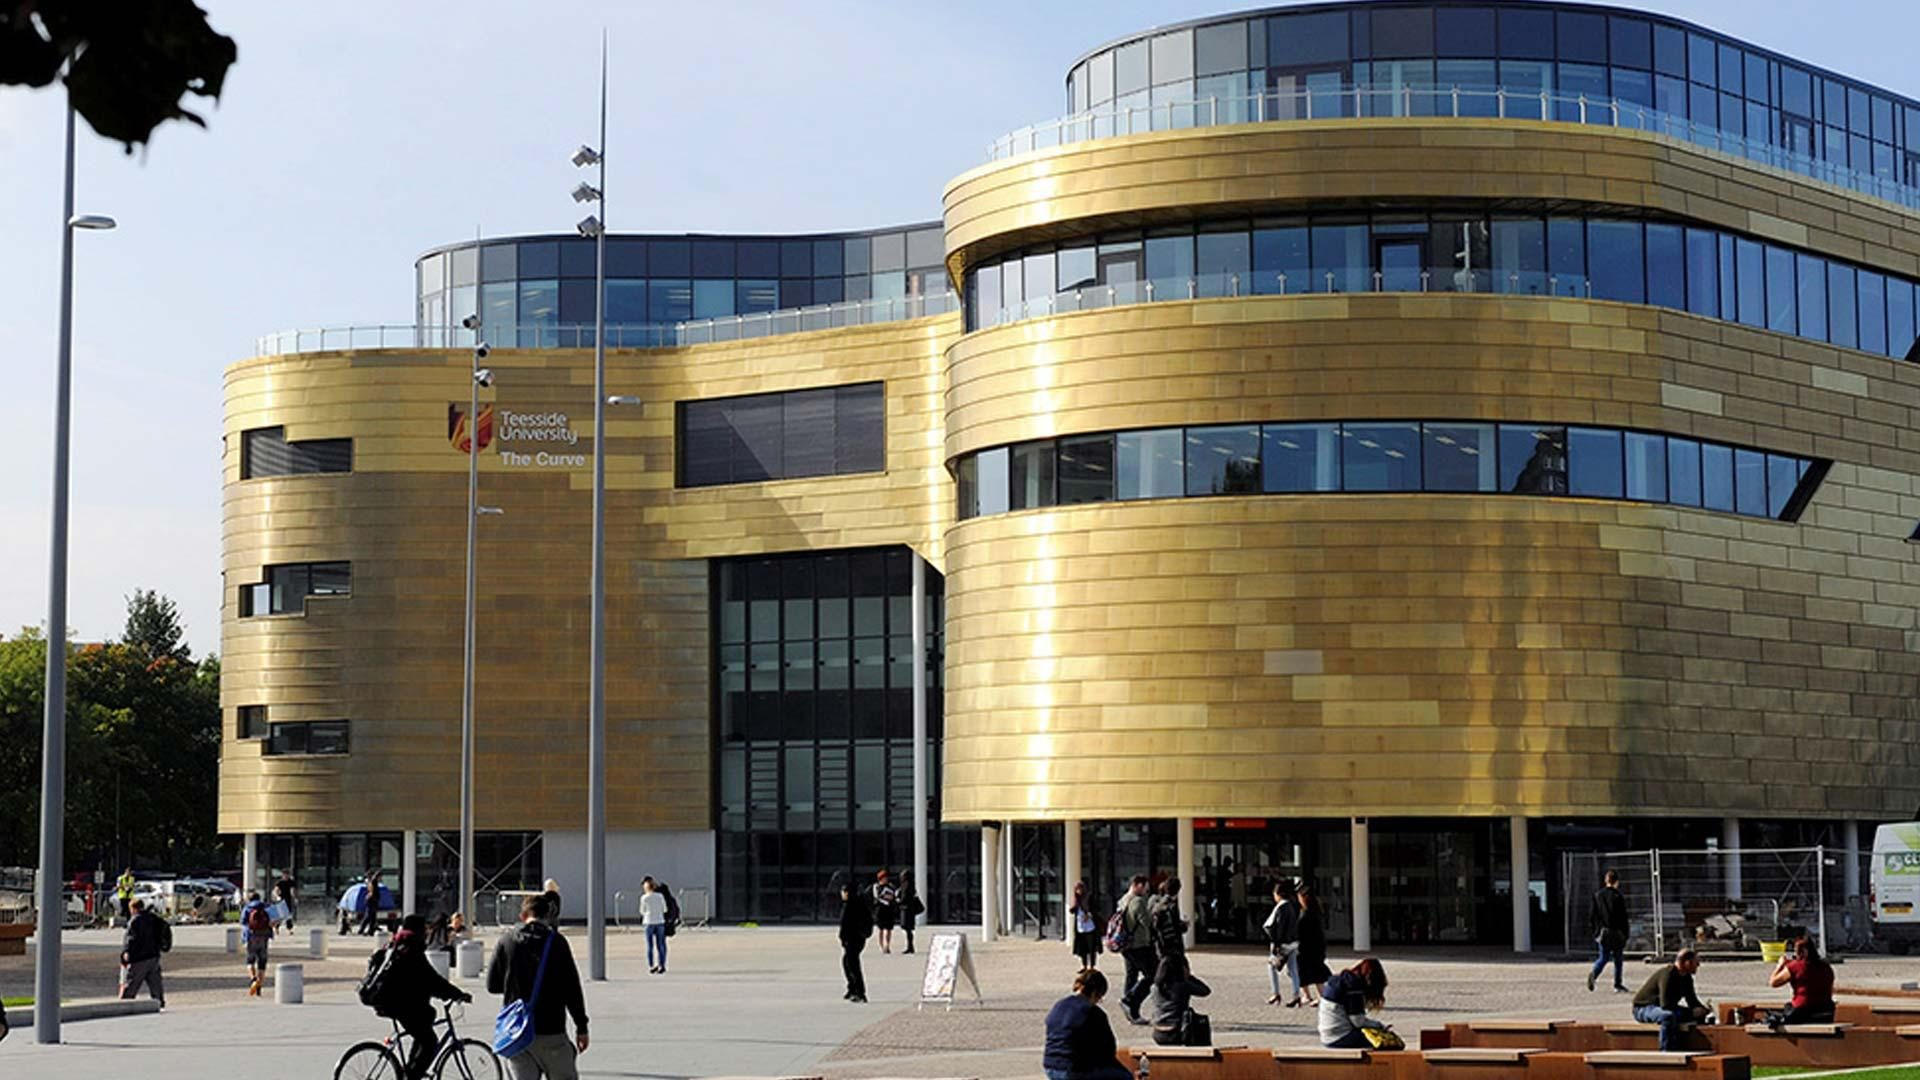 A photo of a Teesside University with students outside